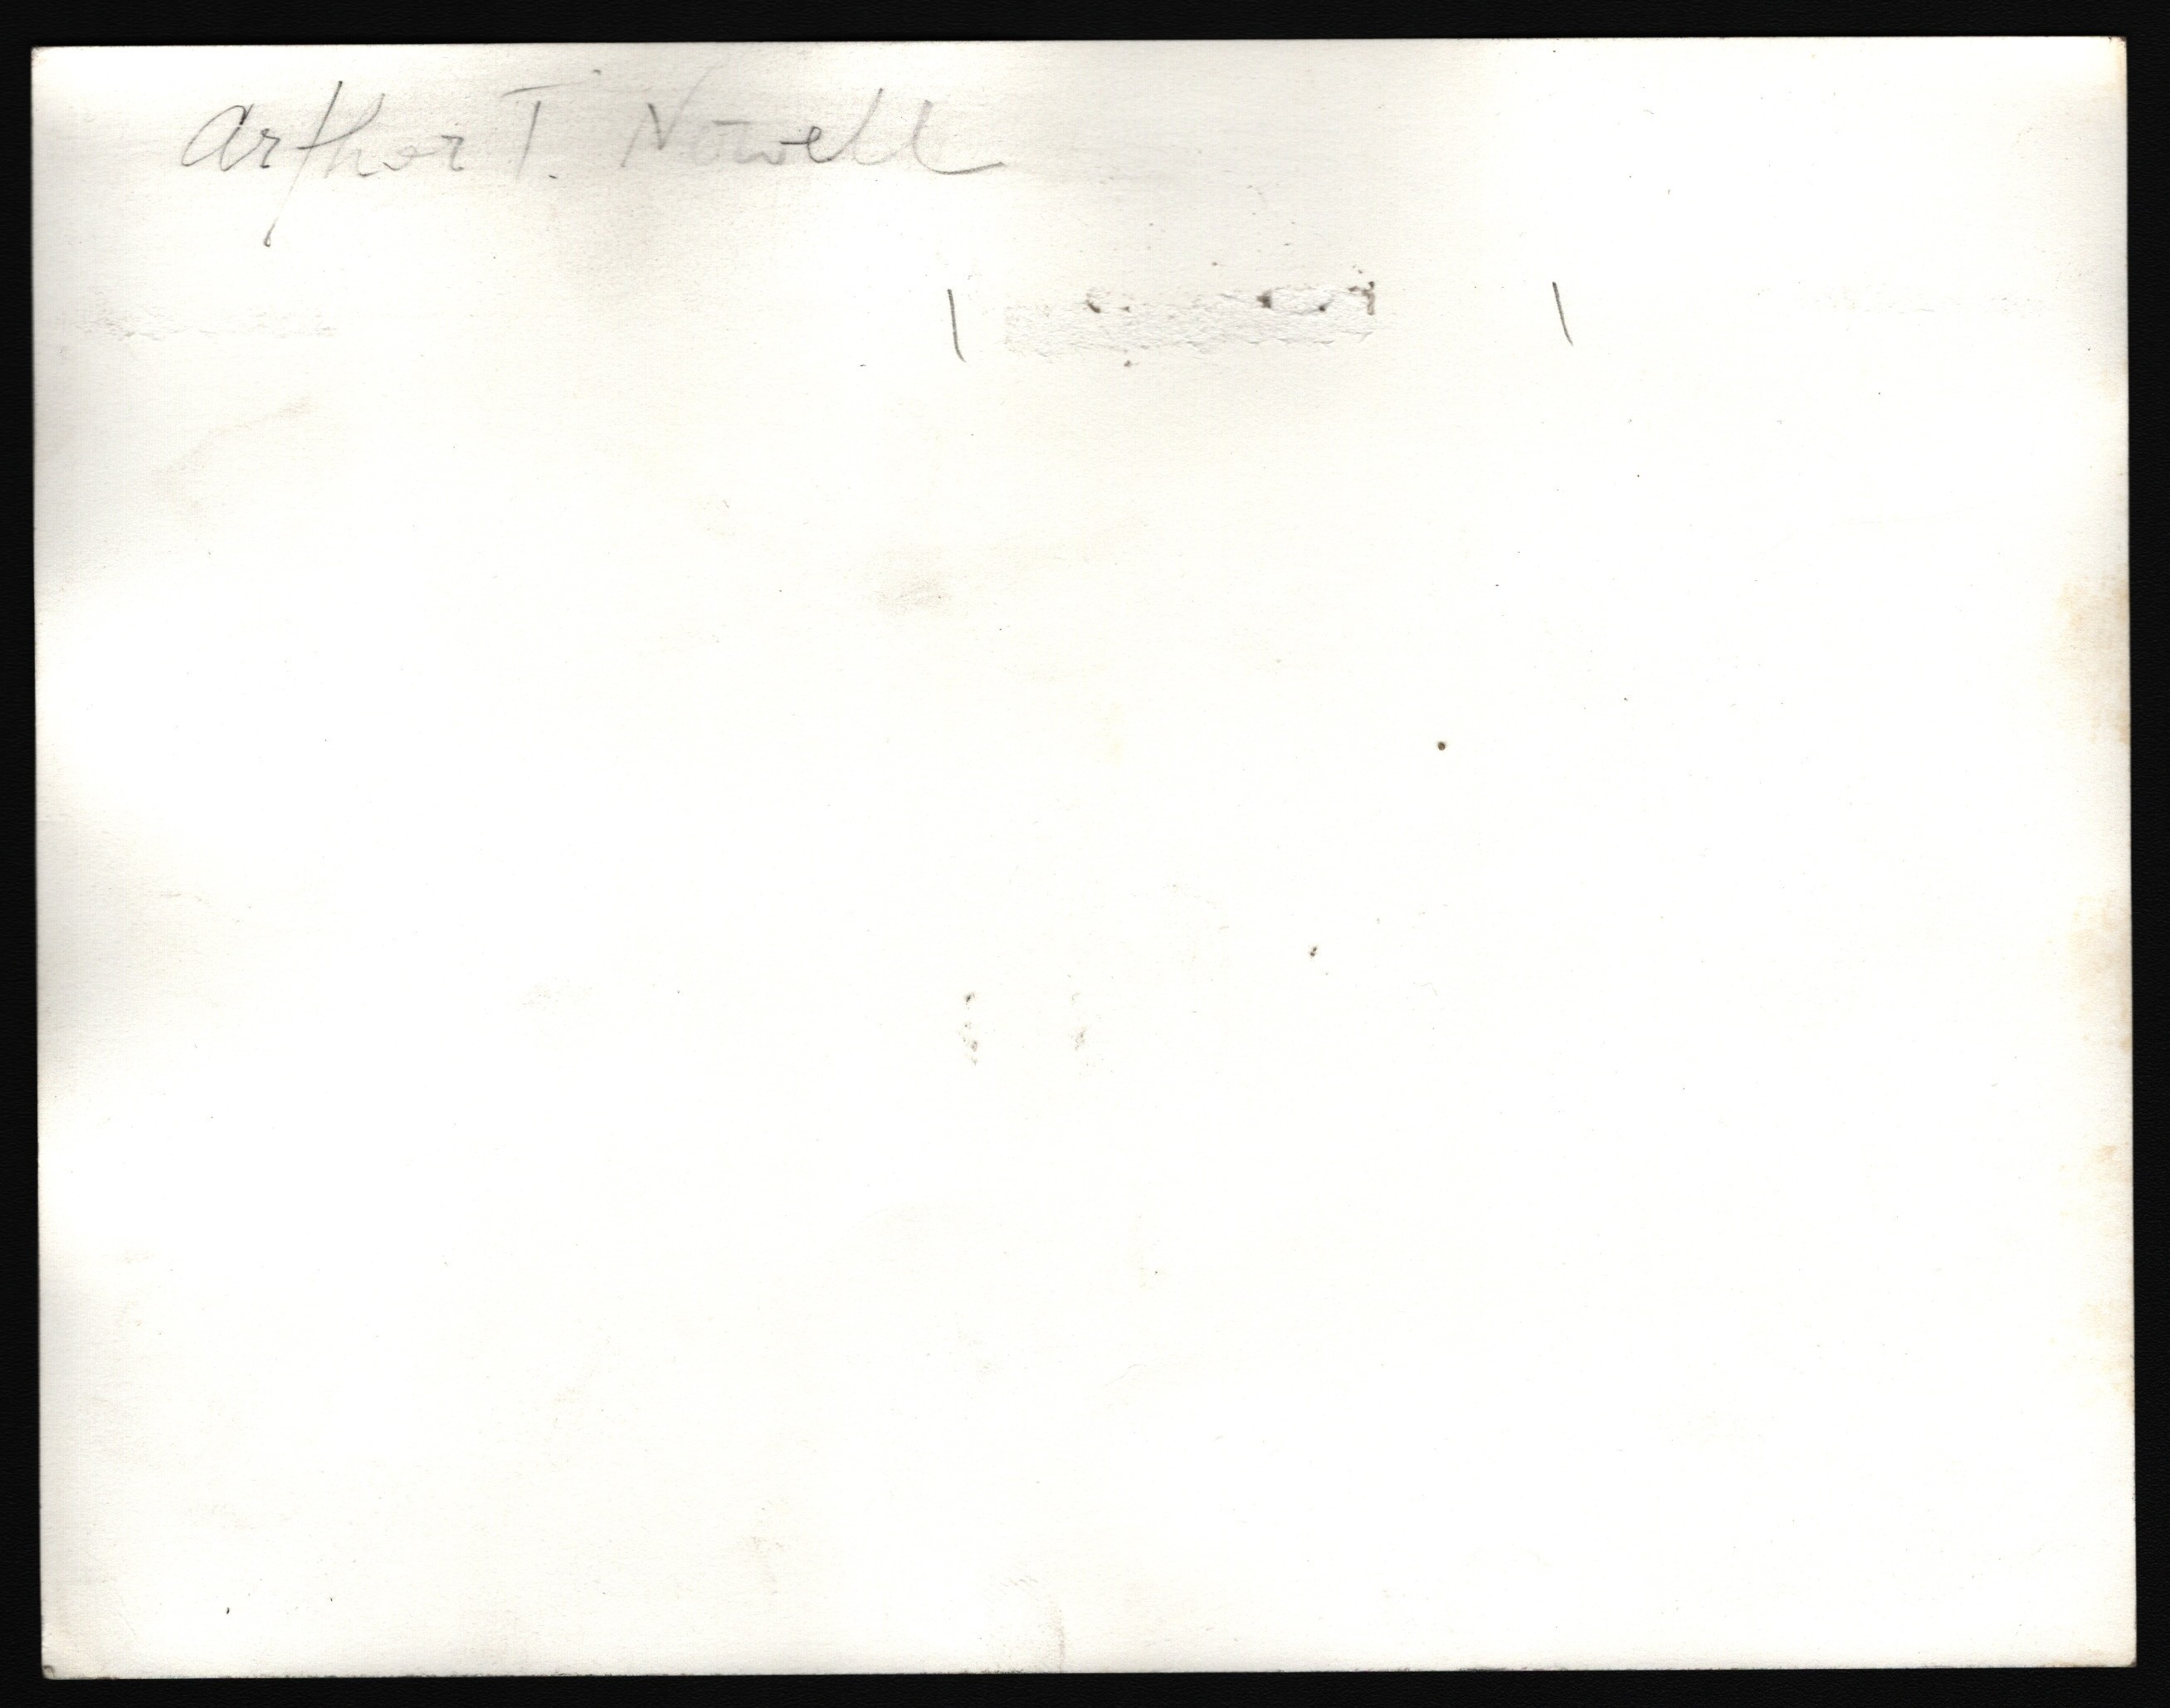 PHOTOGRAPH OF ARTHUR T. NOWELL - Image 2 of 2